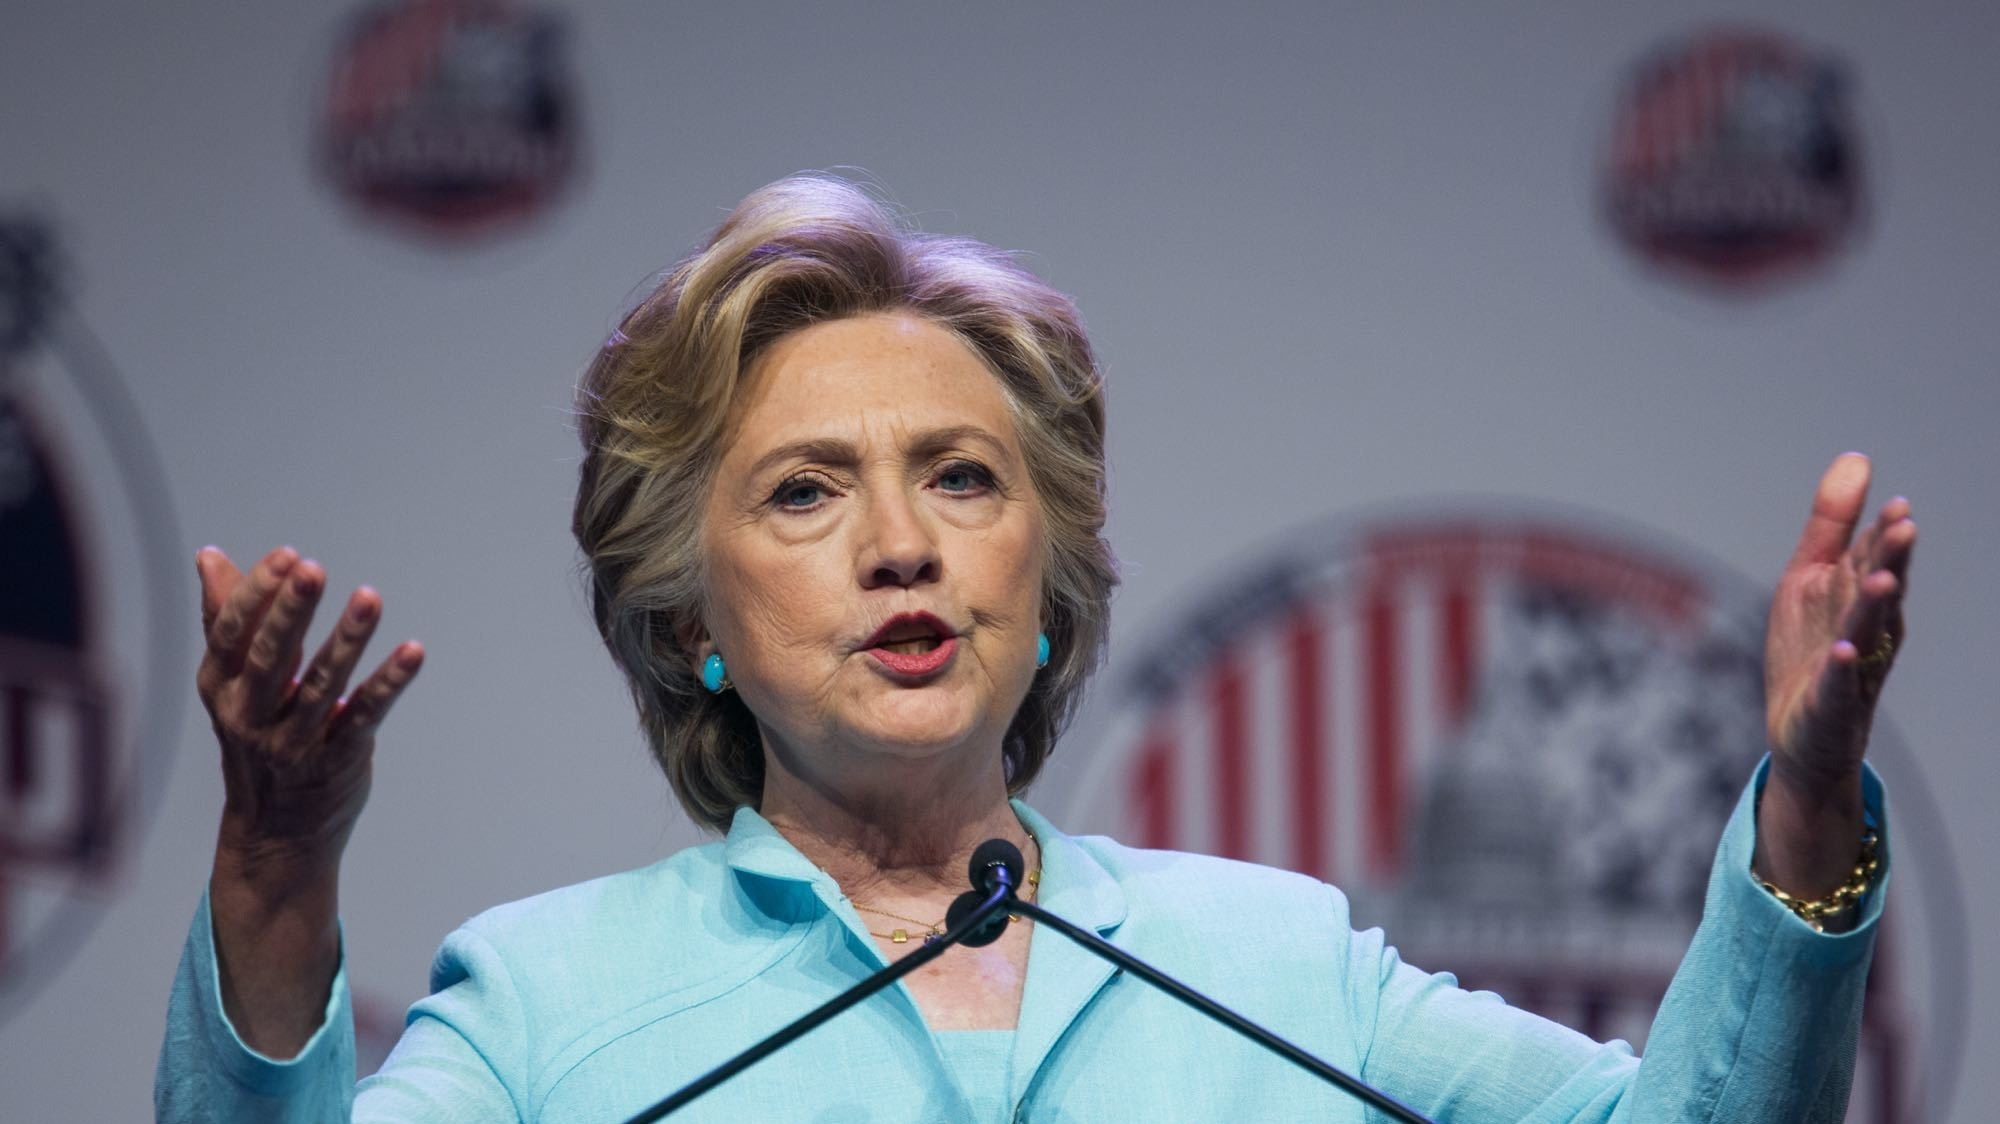 Hillary Clinton made $10 million last year and paid a third of that in taxes